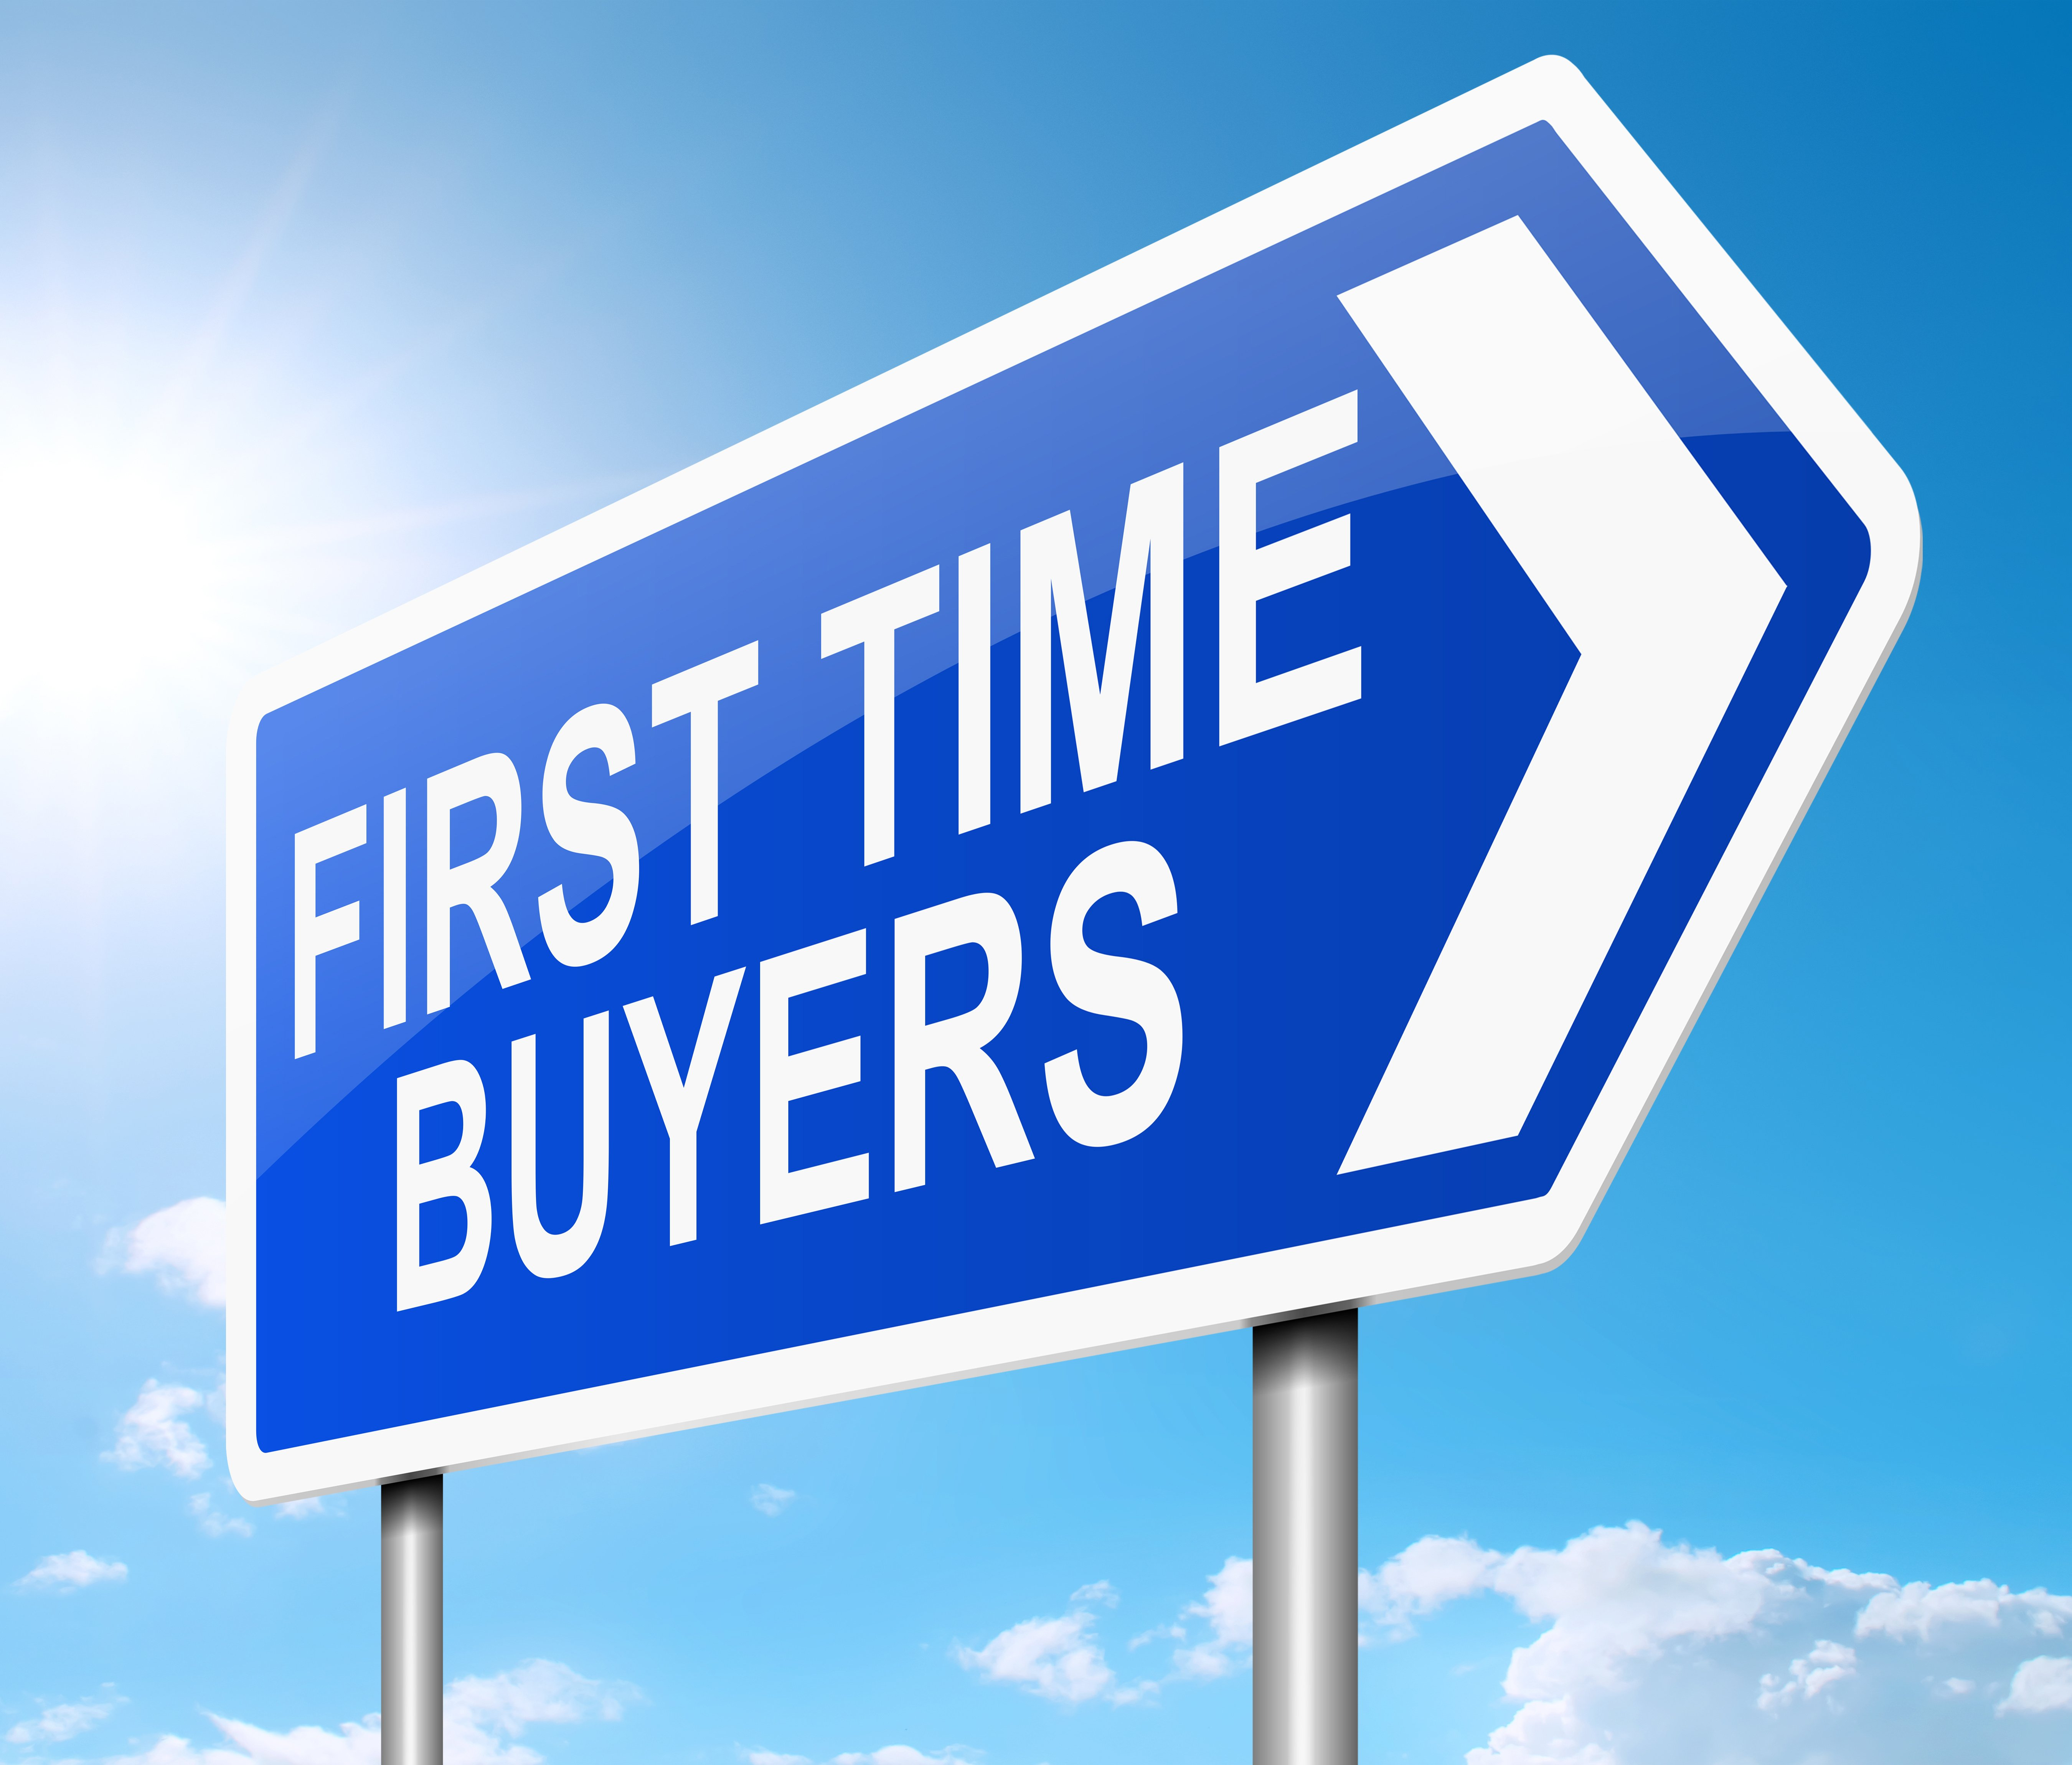 Frustrated First Time Buyer Strategy